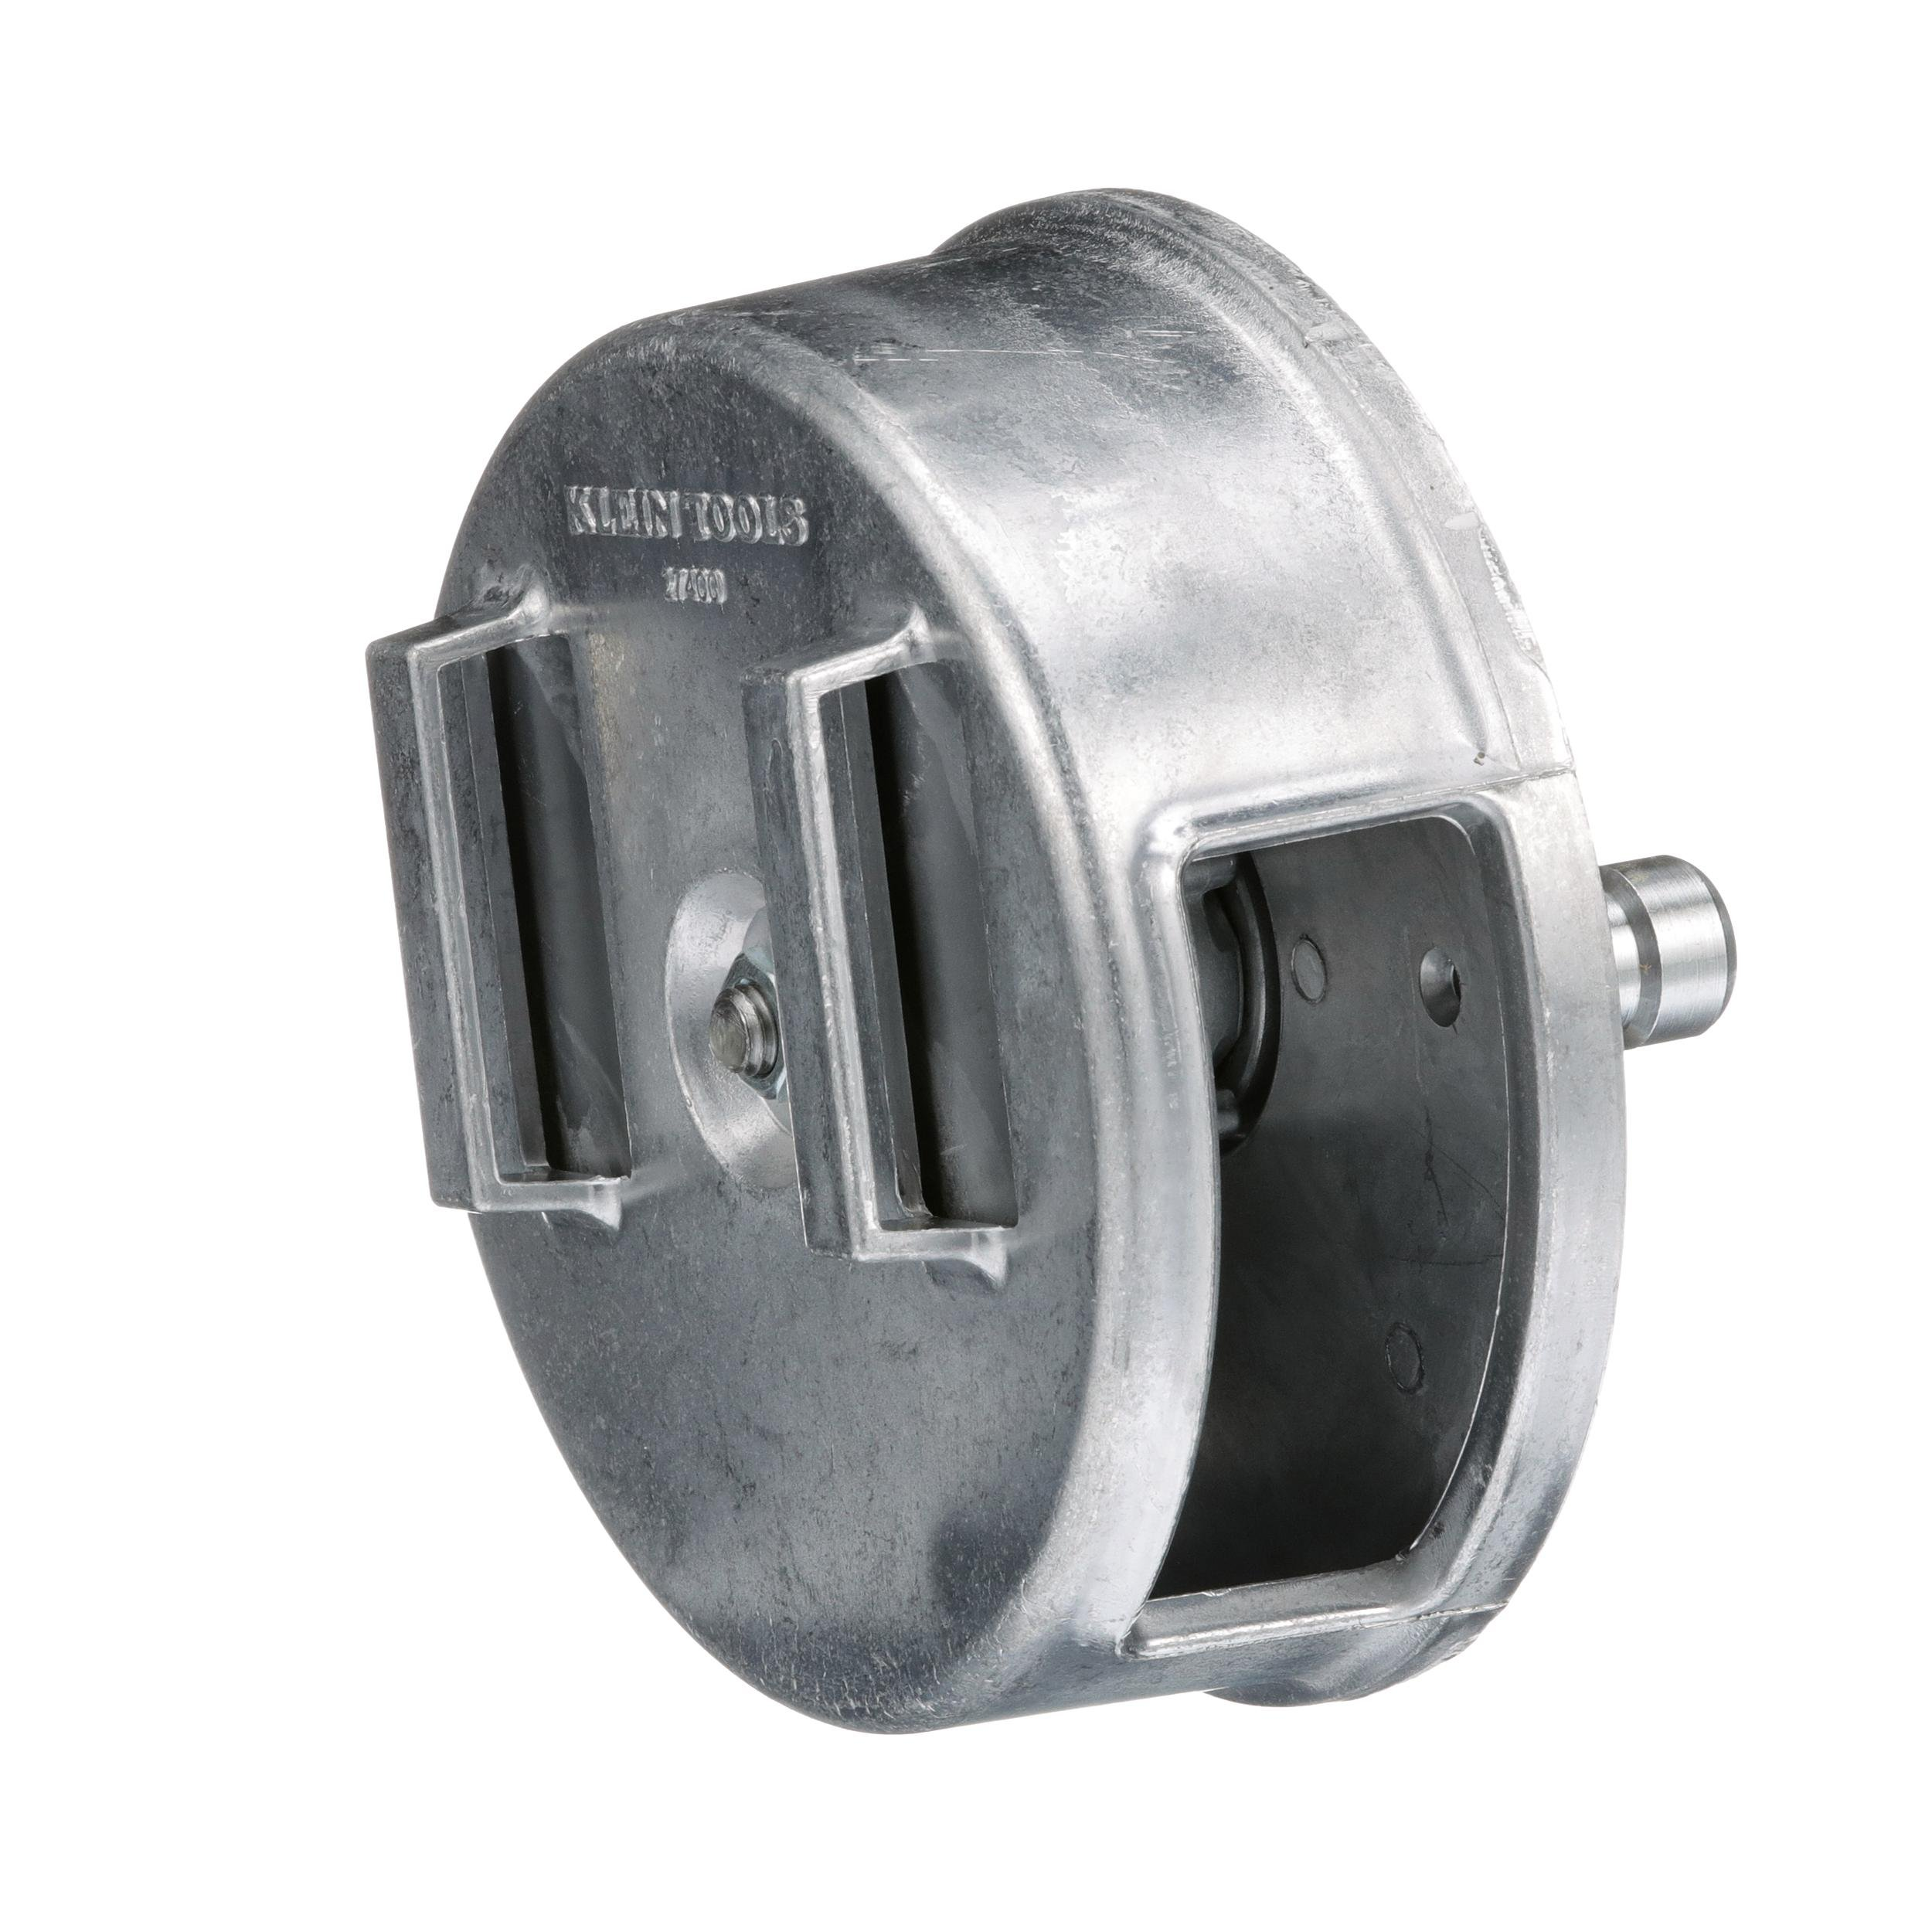 Tie-Wire Reel, Lightweight Aluminum, Left Handed and Right Handed Klein Tools 27400 by Klein Tools